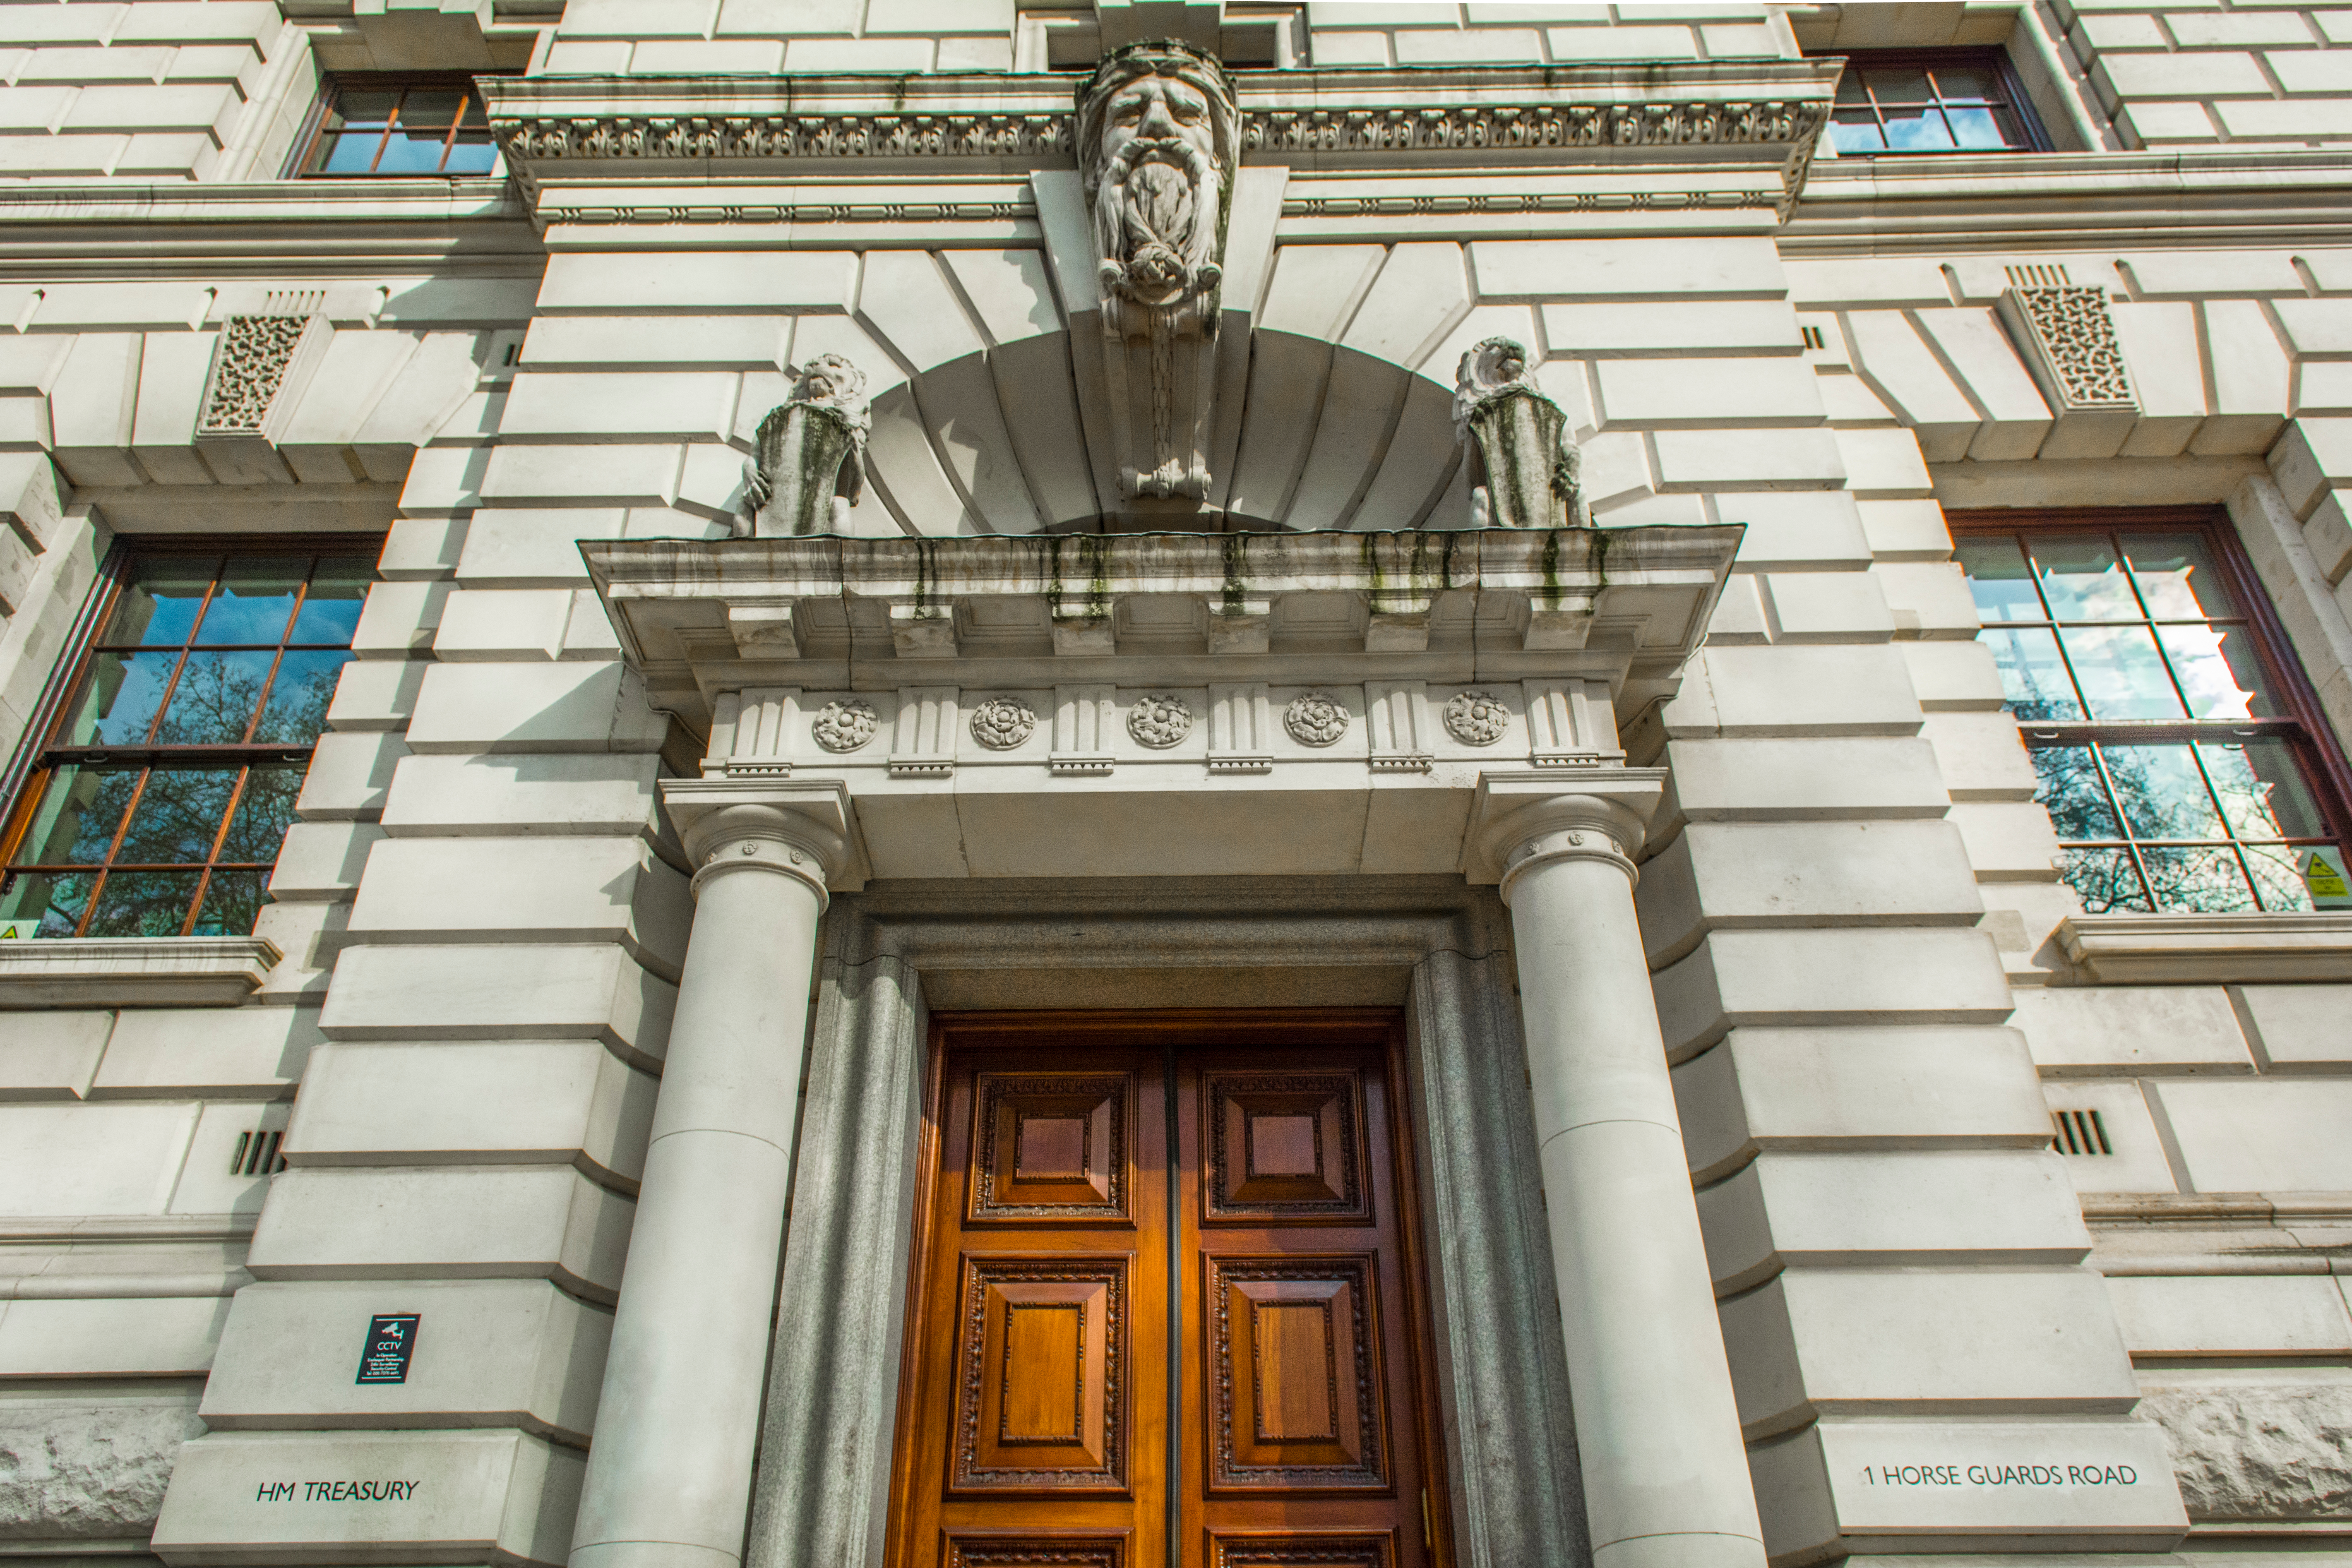 Ministry of Finance (HM Treasury), the historical London